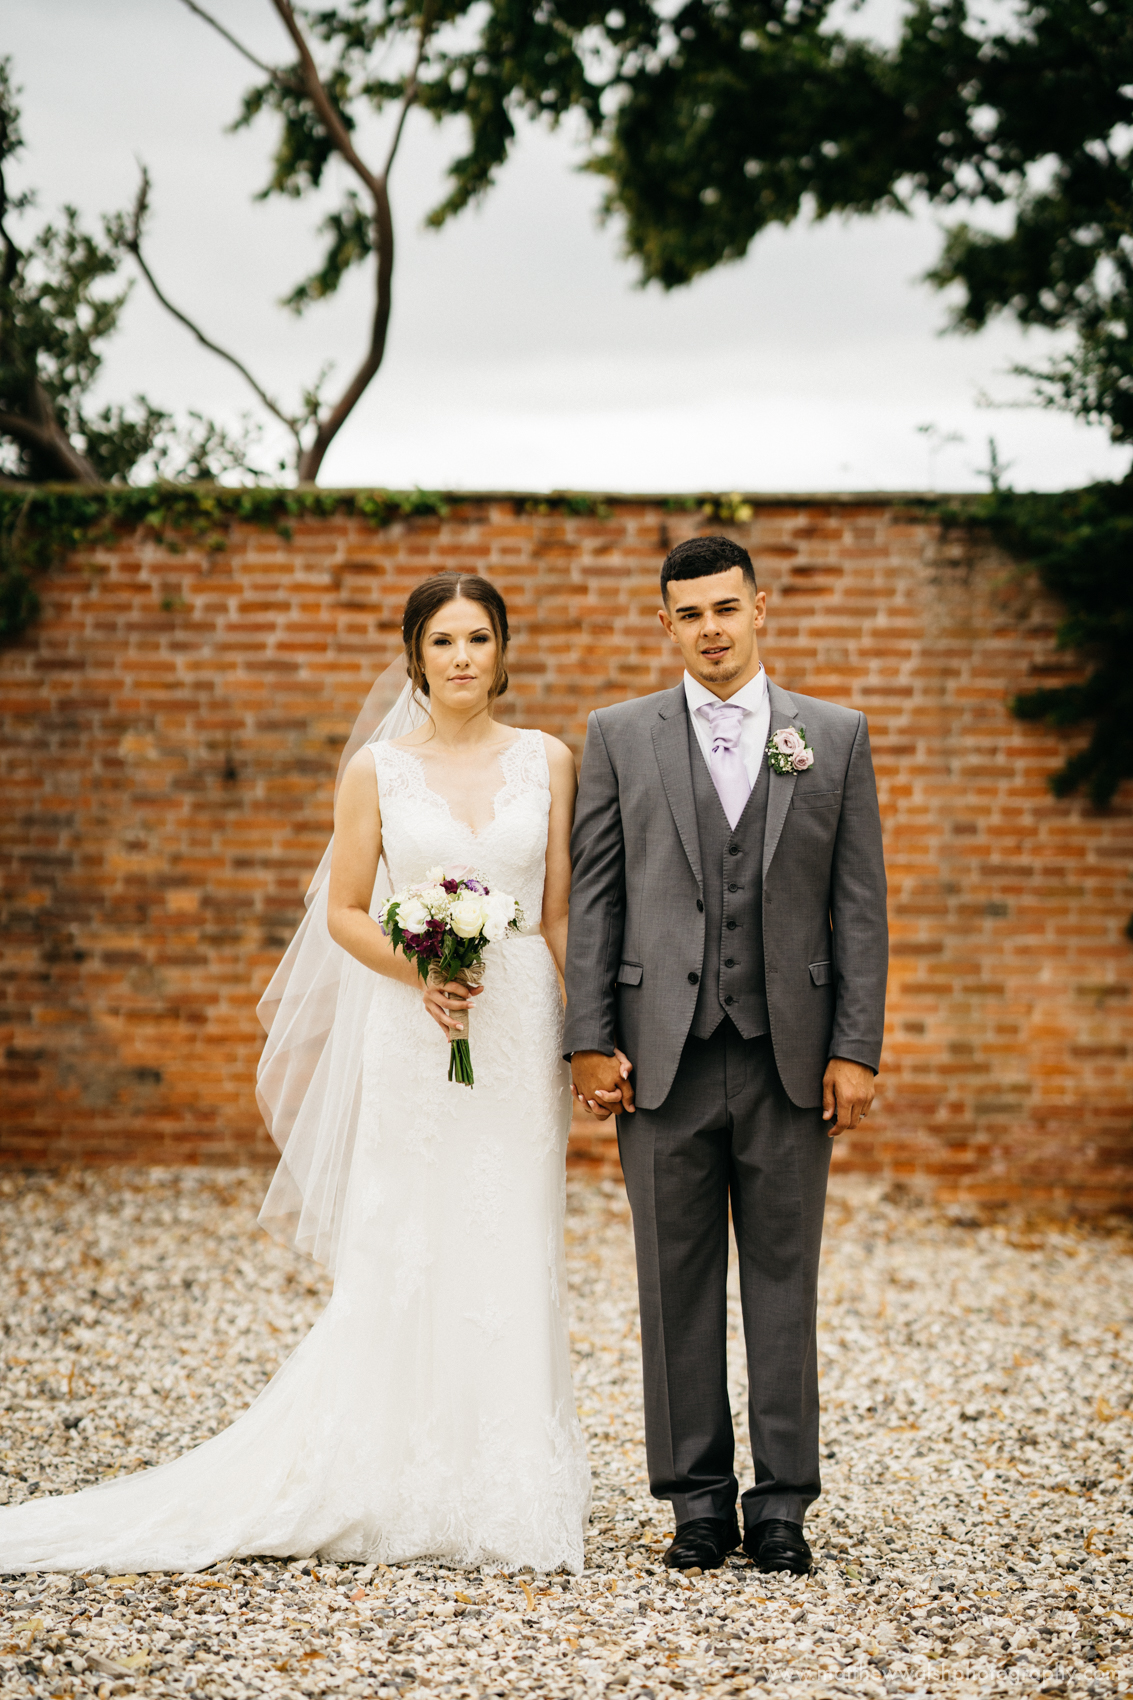 The classic Bride and groom portrait